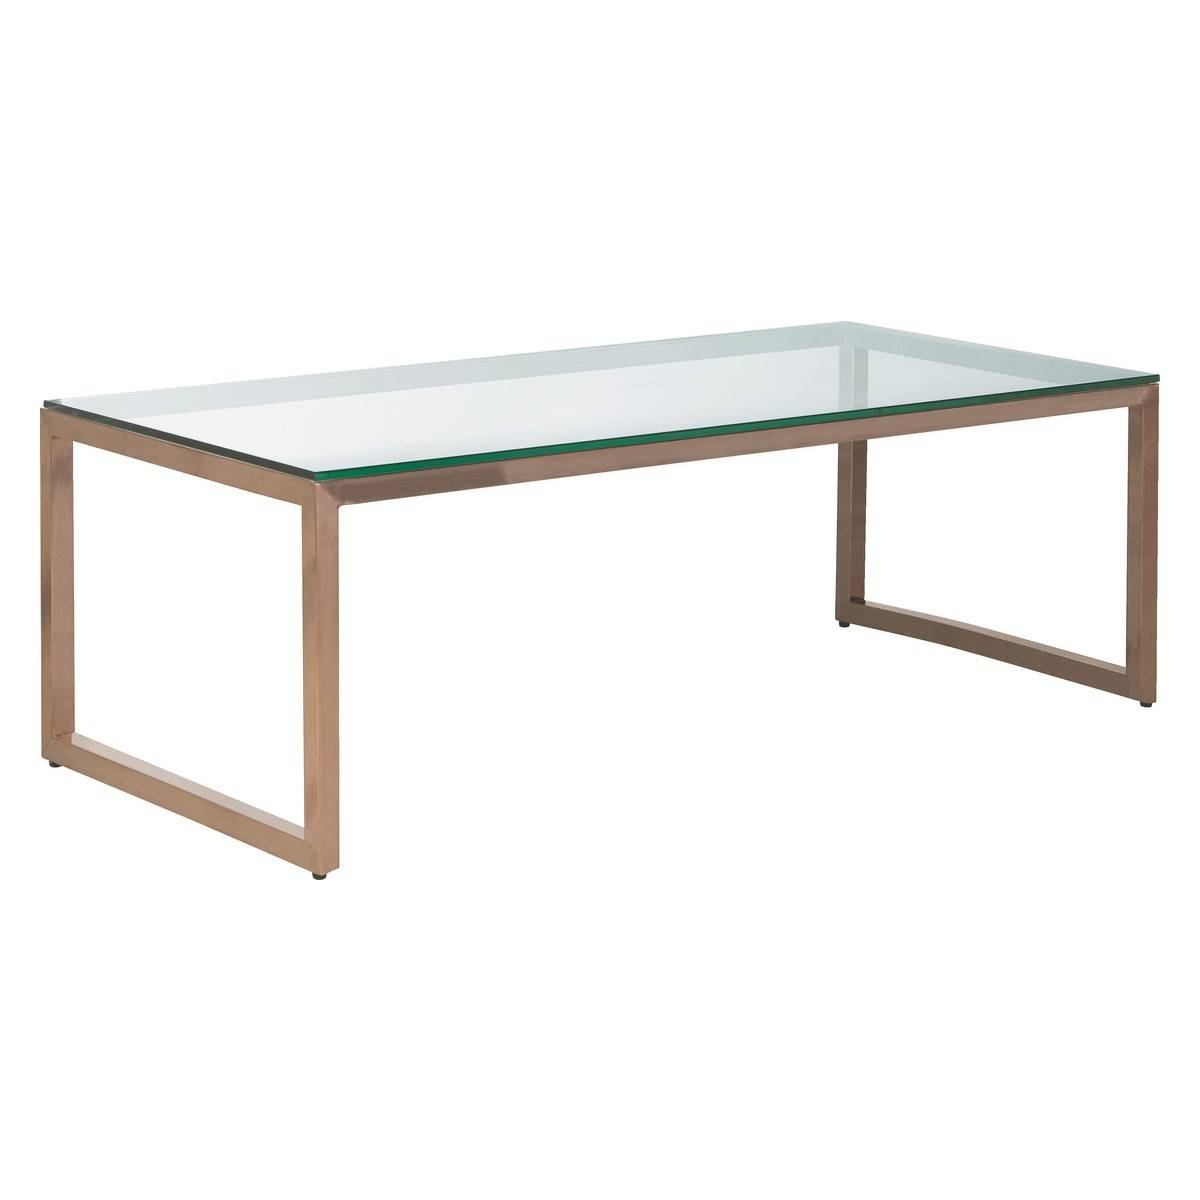 Coffee Table. Enchanting Glass Coffee Table Design Ideas pertaining to Unusual Glass Coffee Tables (Image 2 of 30)